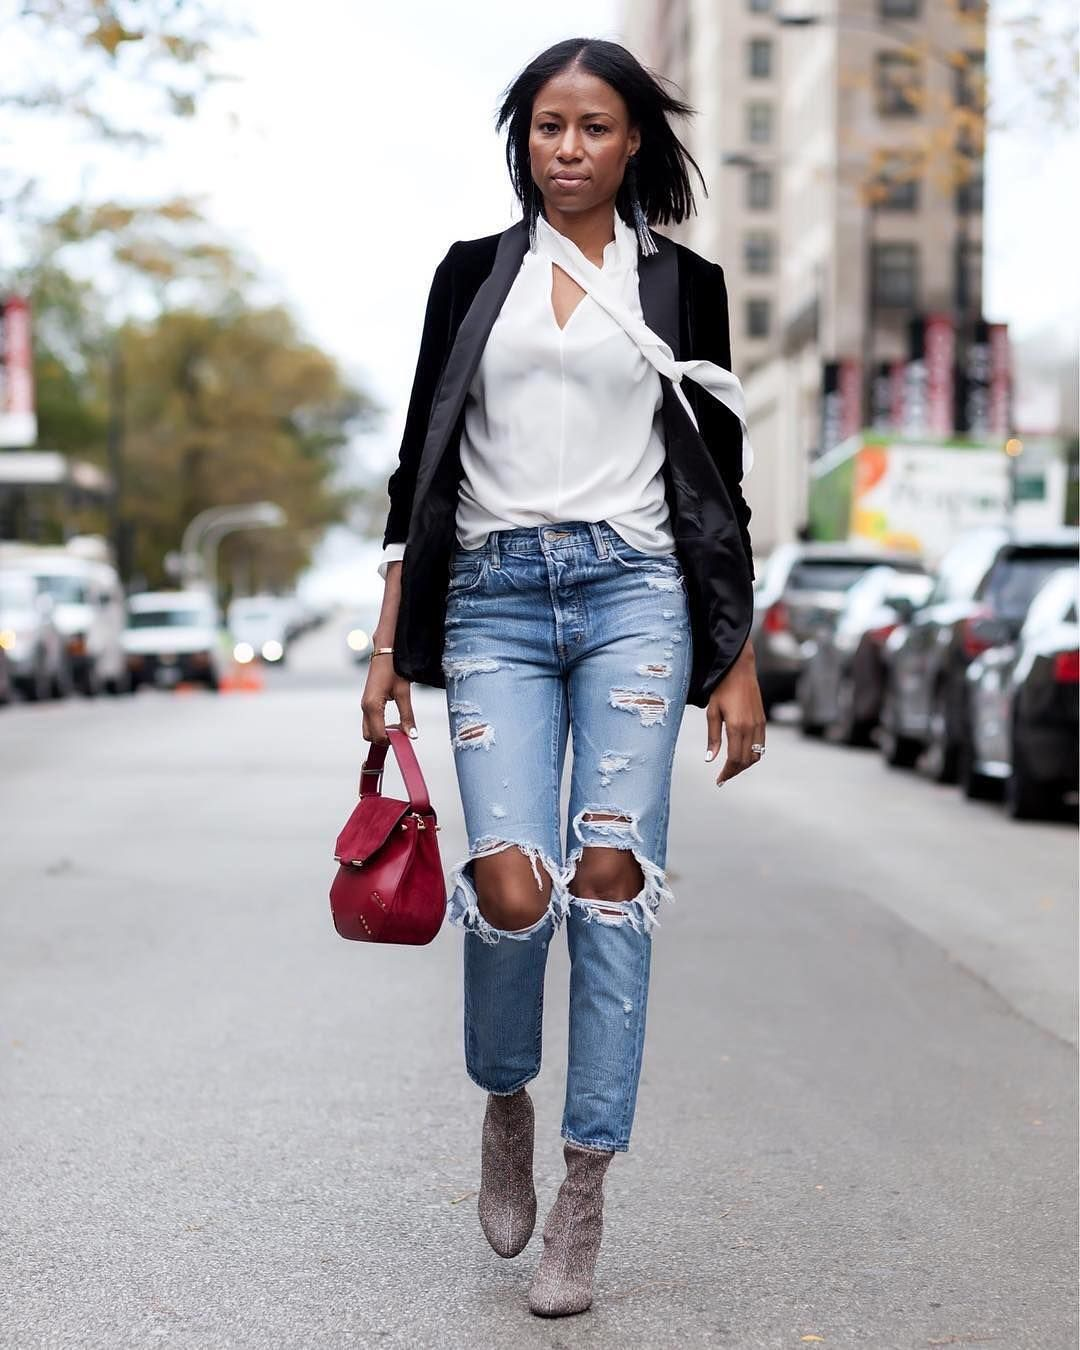 @clarkandstone makin' moves in this casual chic denim and blazer look. ⠀  ⠀  Share your #pinterestinspired style with #MyPinterest.